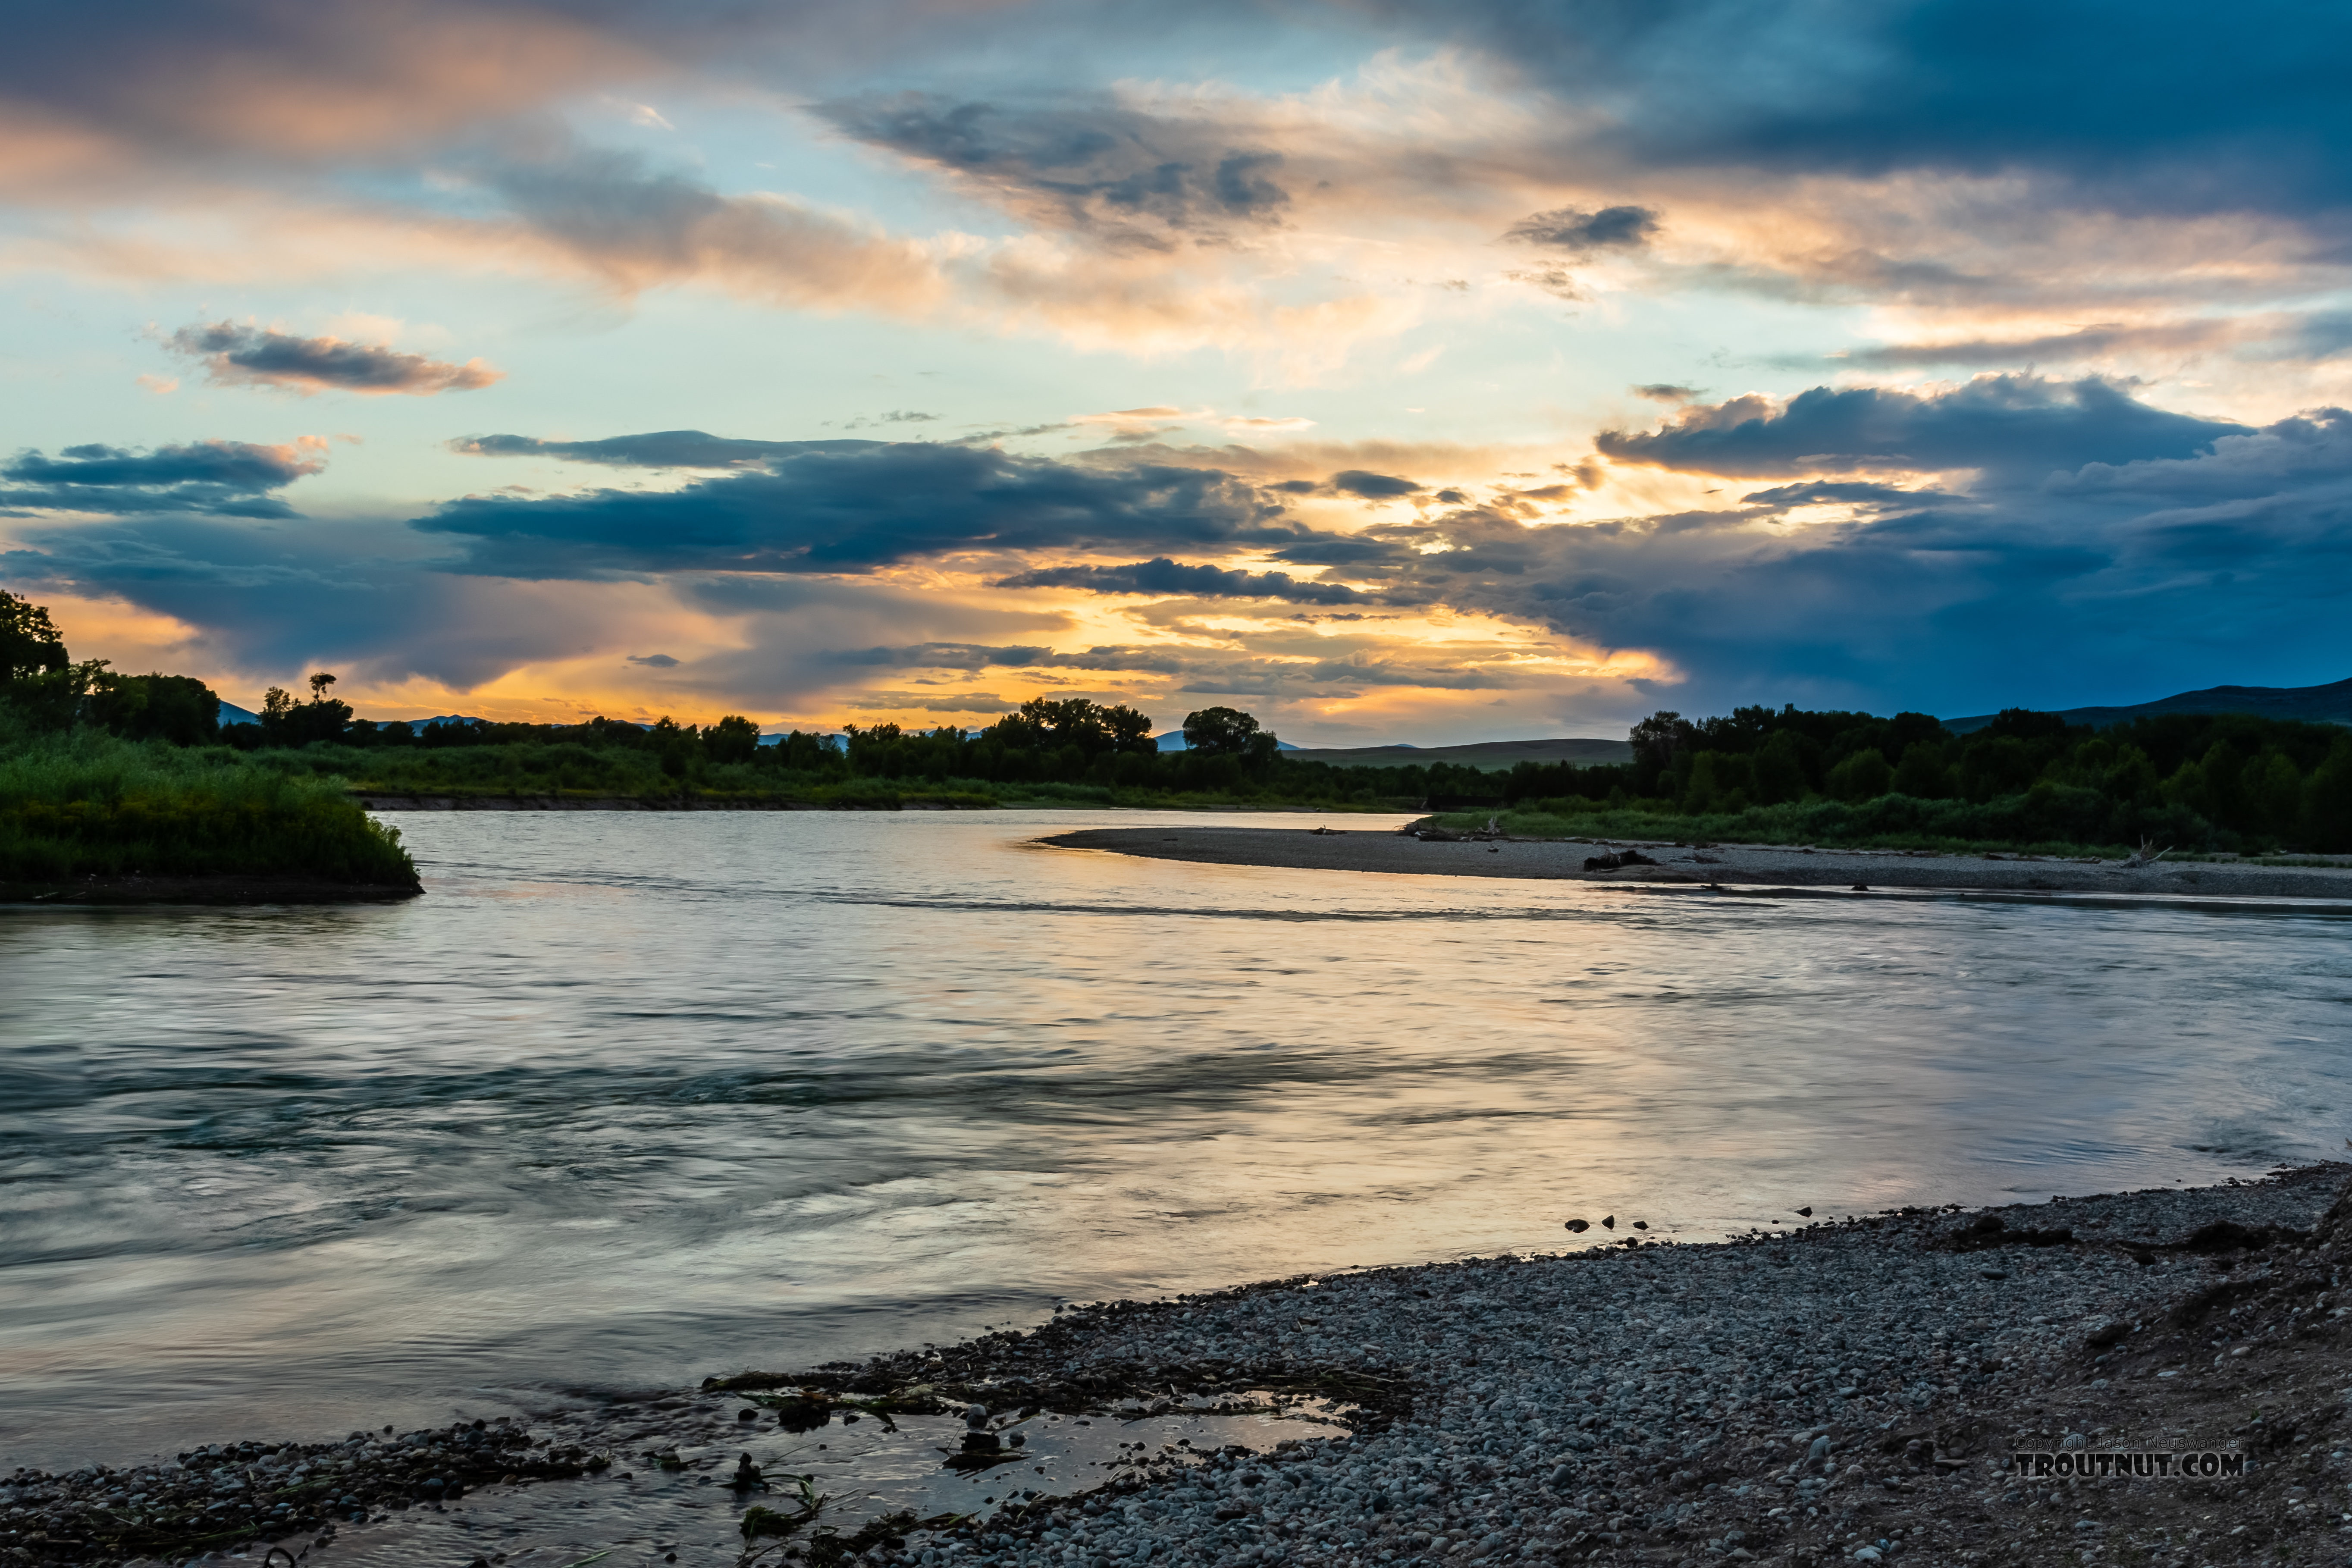 Missouri River origin (Madison and Jefferson junction) From the Missouri River in Montana.